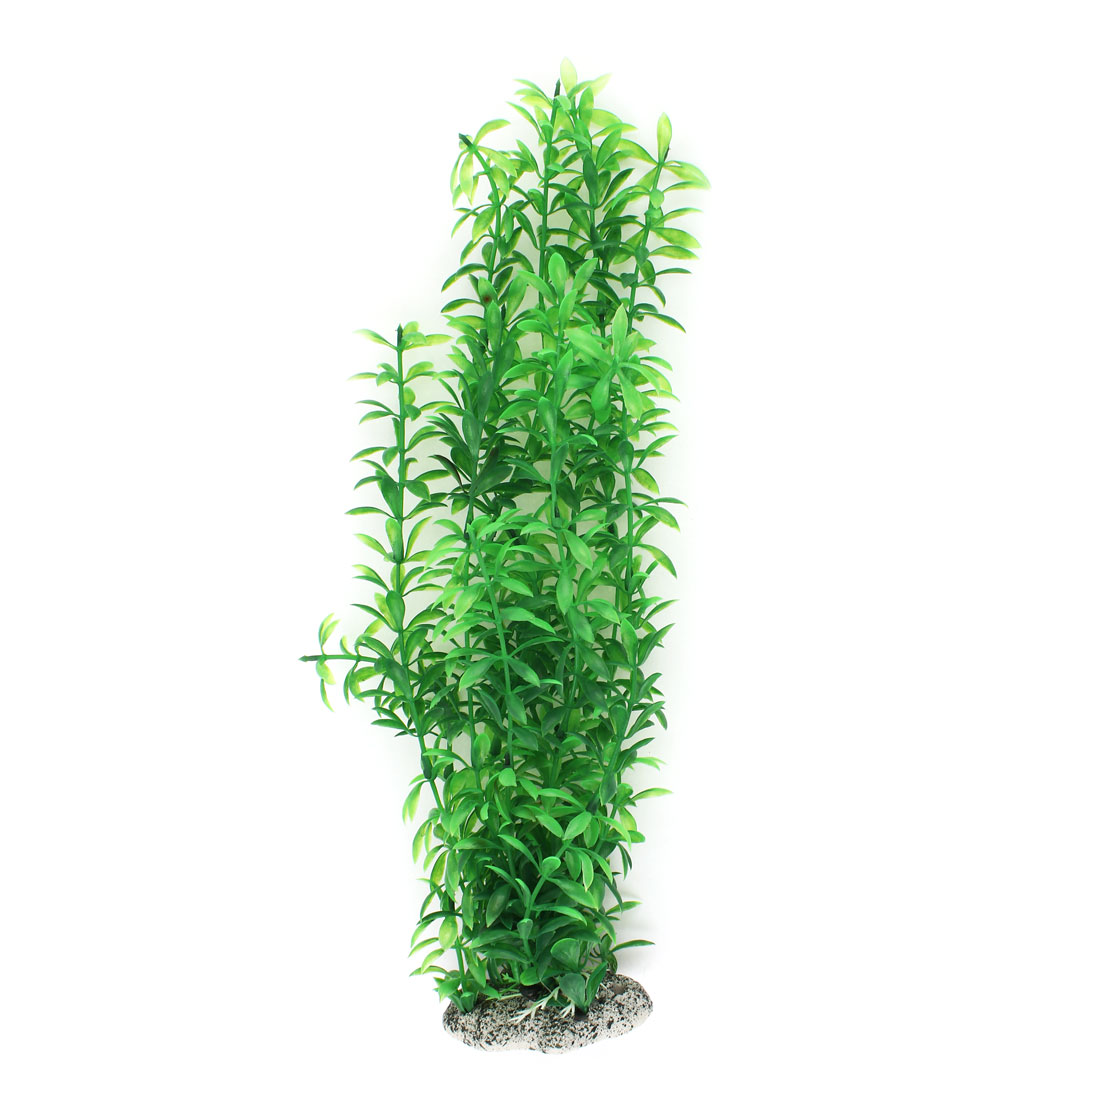 Fish Tank Decoration Simulational Underwater Water Plant Green 14.2-inch Height